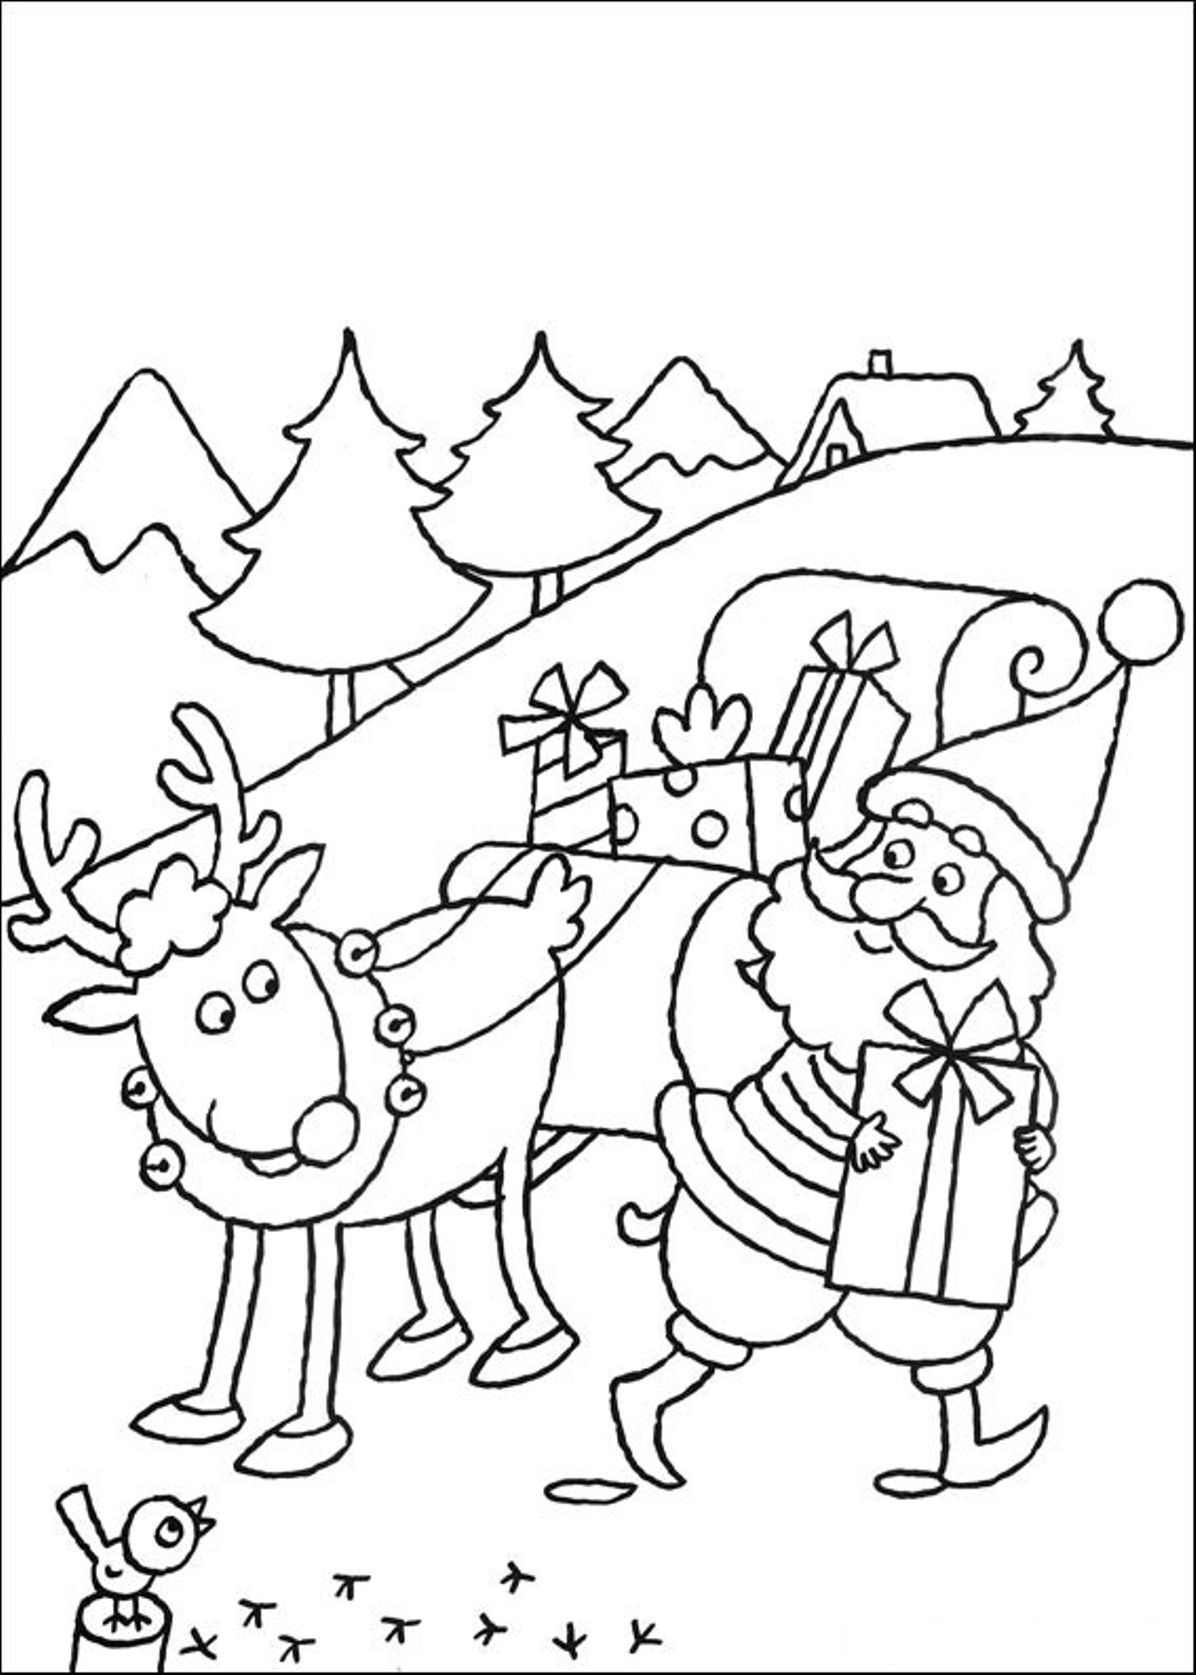 Santa And Reindeer Coloring Pictures With S Sheets His Pages Printable